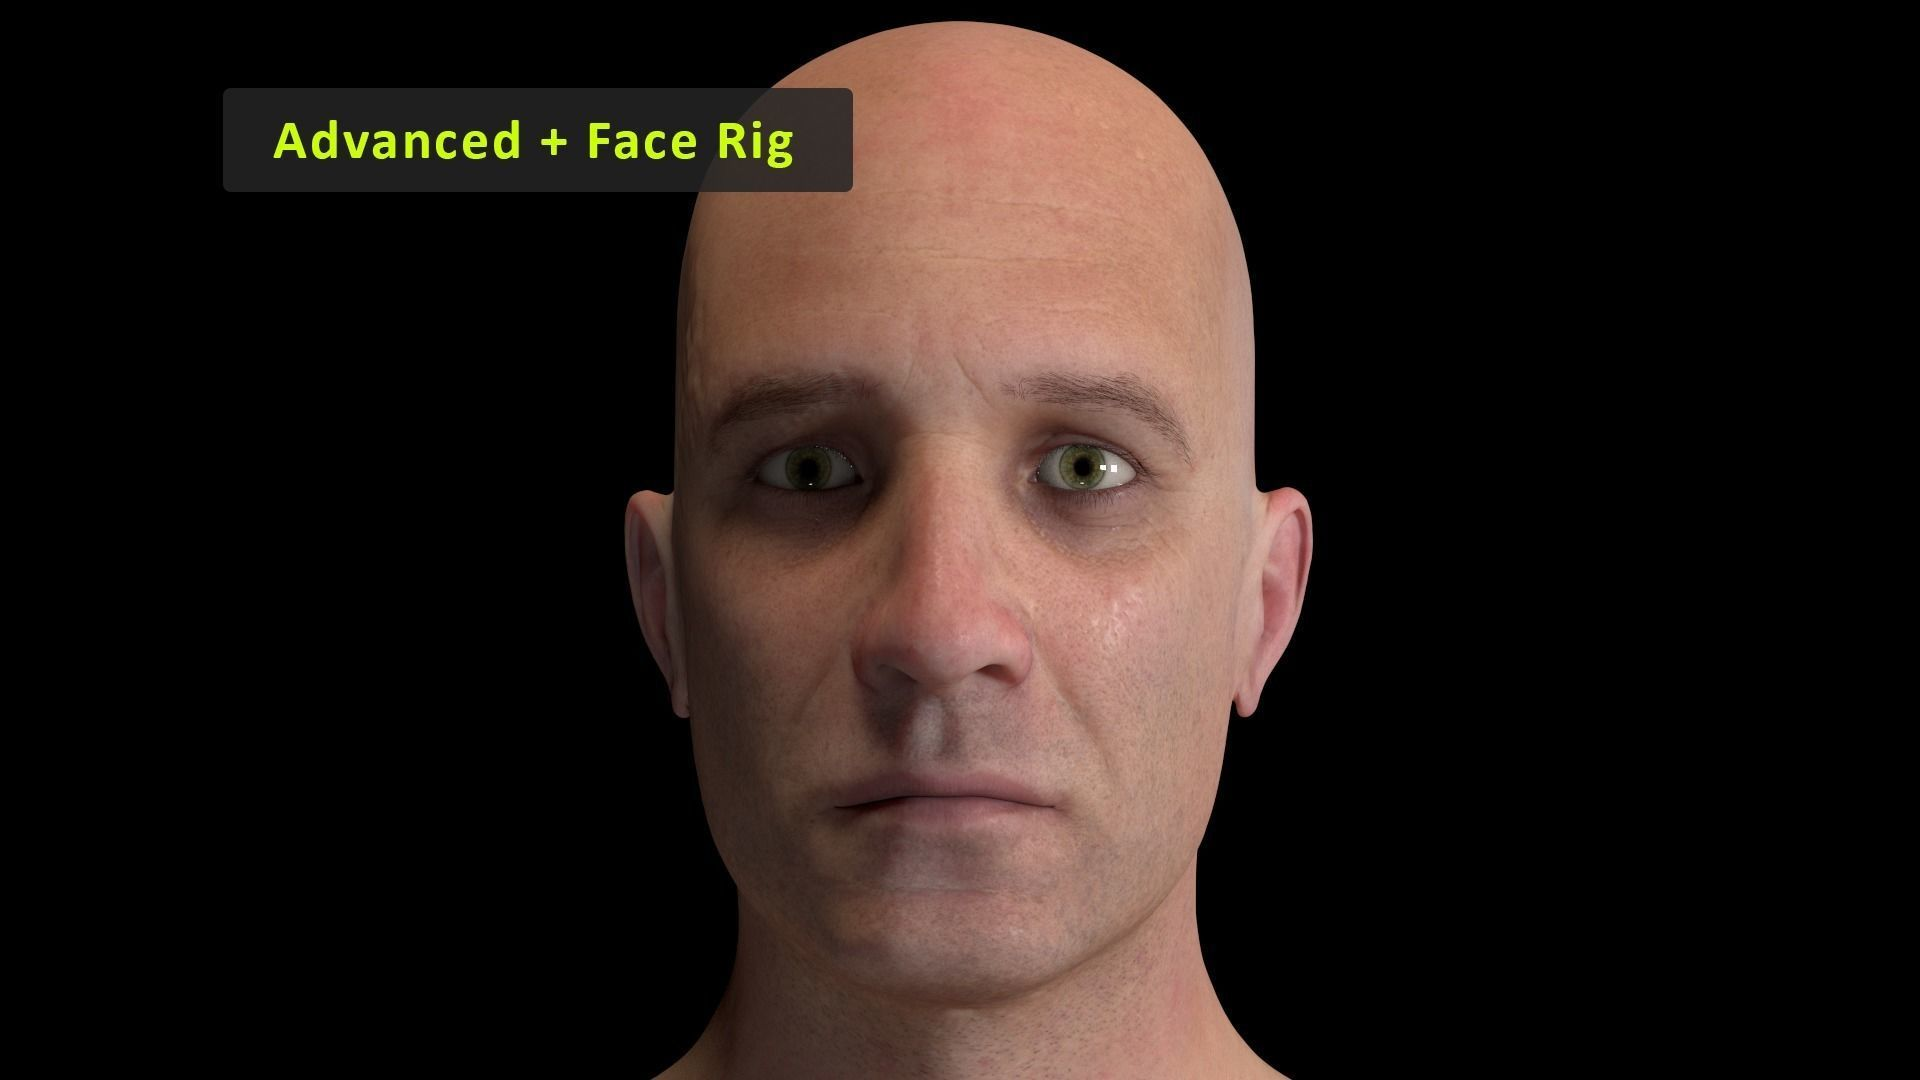 Cinematic Male 001 - Advanced Body - Face Rig - GUI